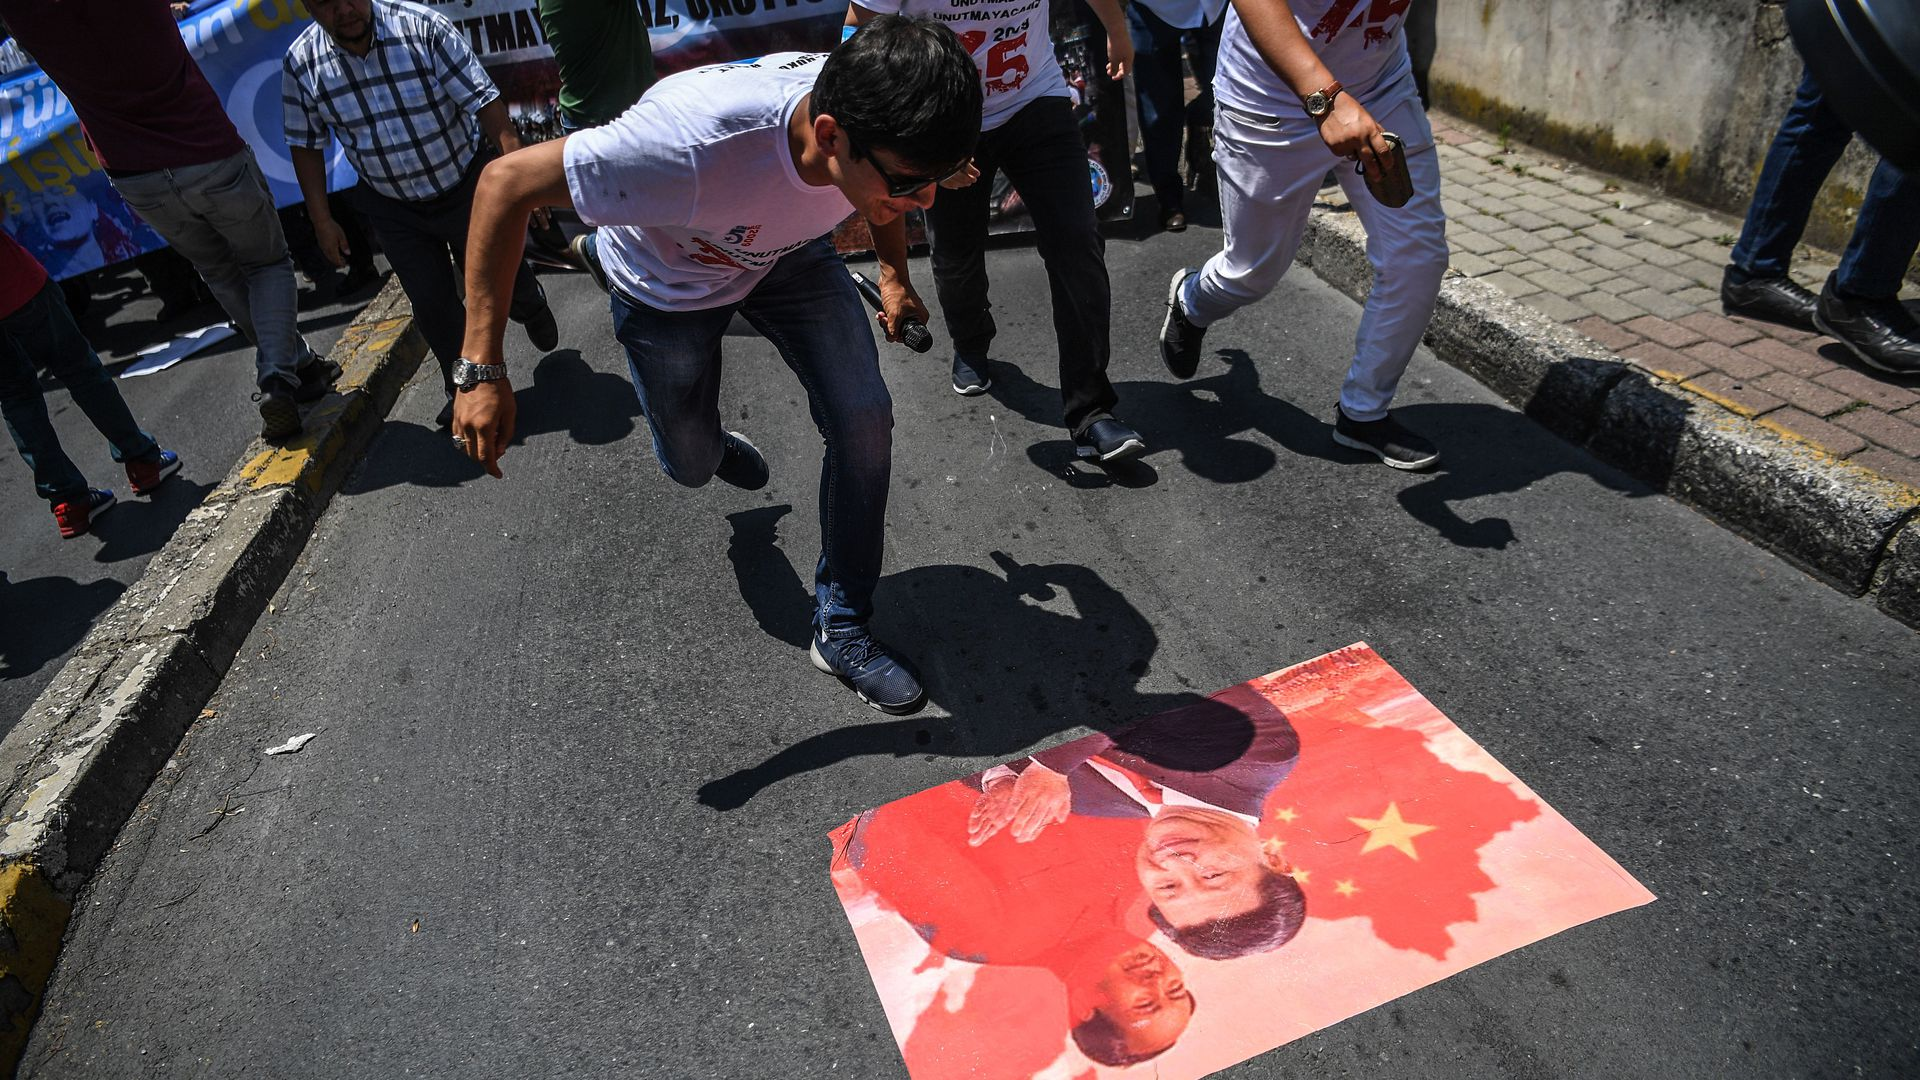 People spit on a poster of Chinese President Xi Jinping.